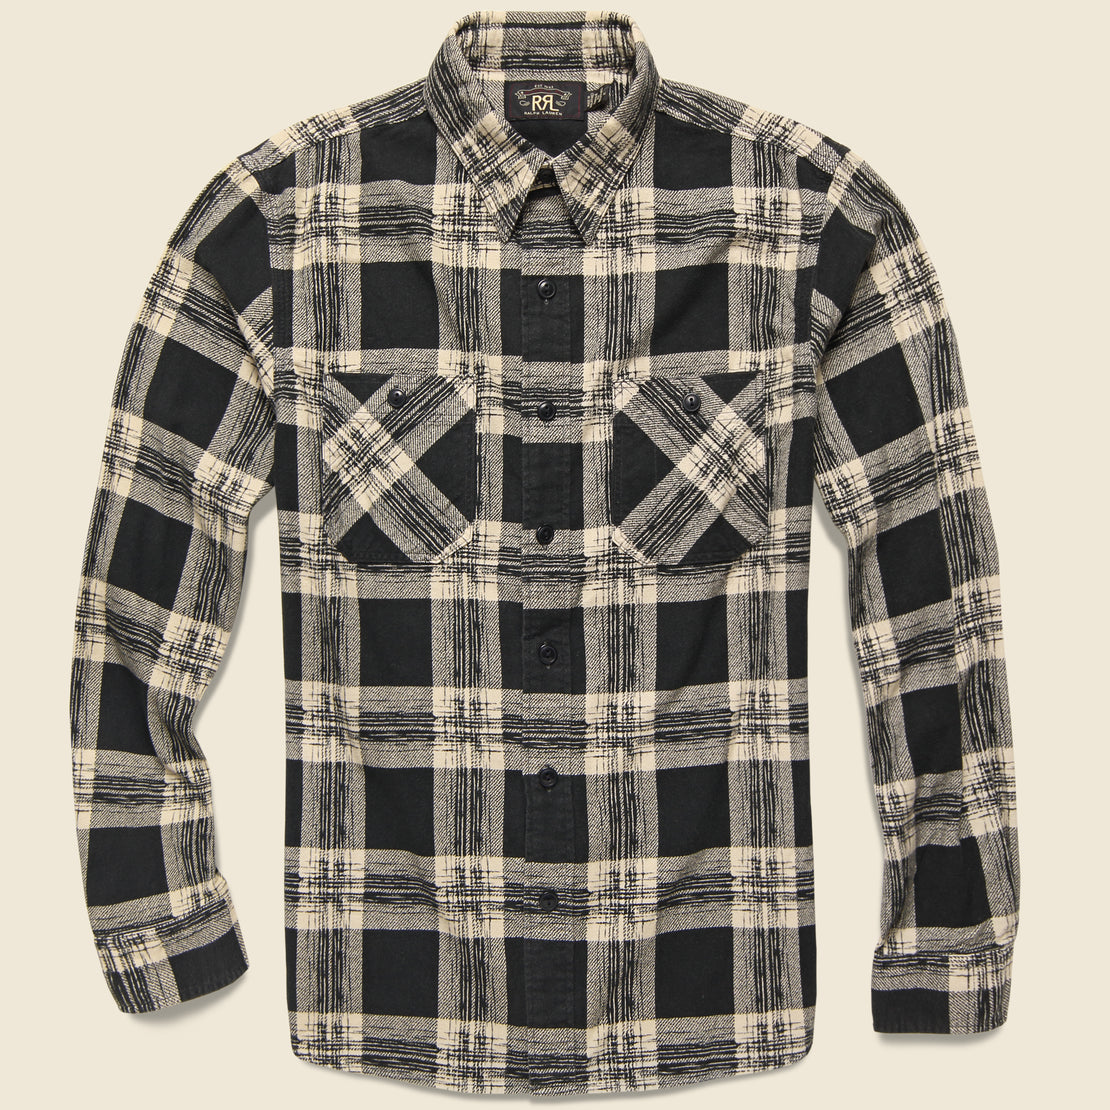 RRL Wallace Plaid Workshirt Flannel - Black/Cream